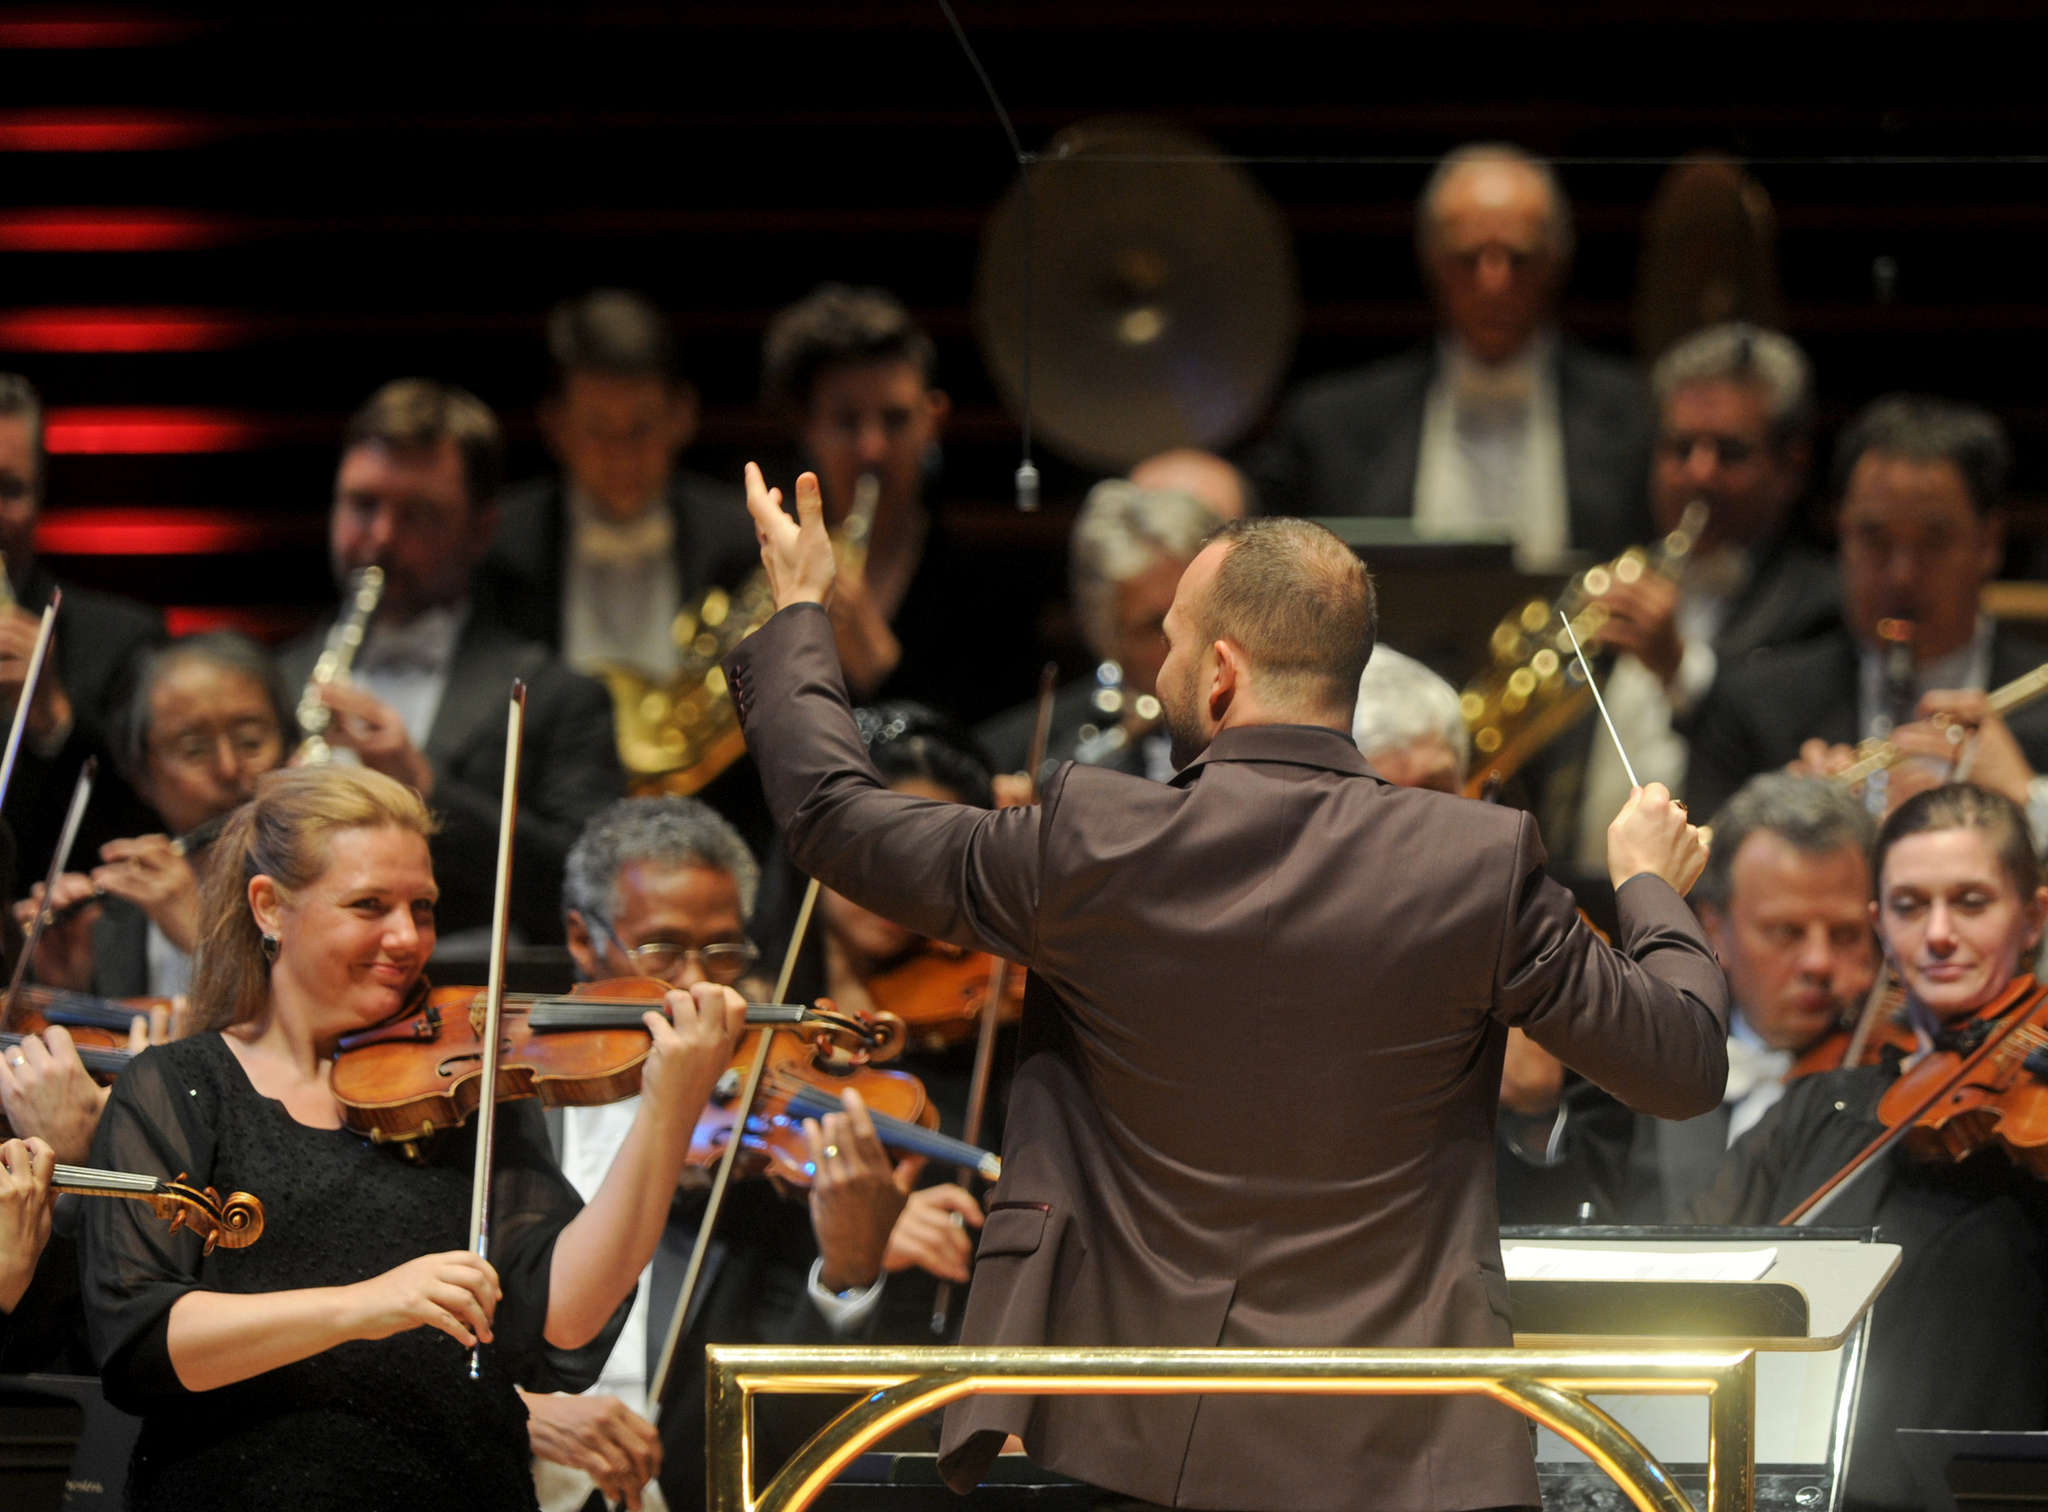 The Philadelphia Orchestra under the direction of Yannick Nézet-Séguin. He comes across as genuinely interested in the group´s well-being, but that´s just one key to developing a strategic plan.